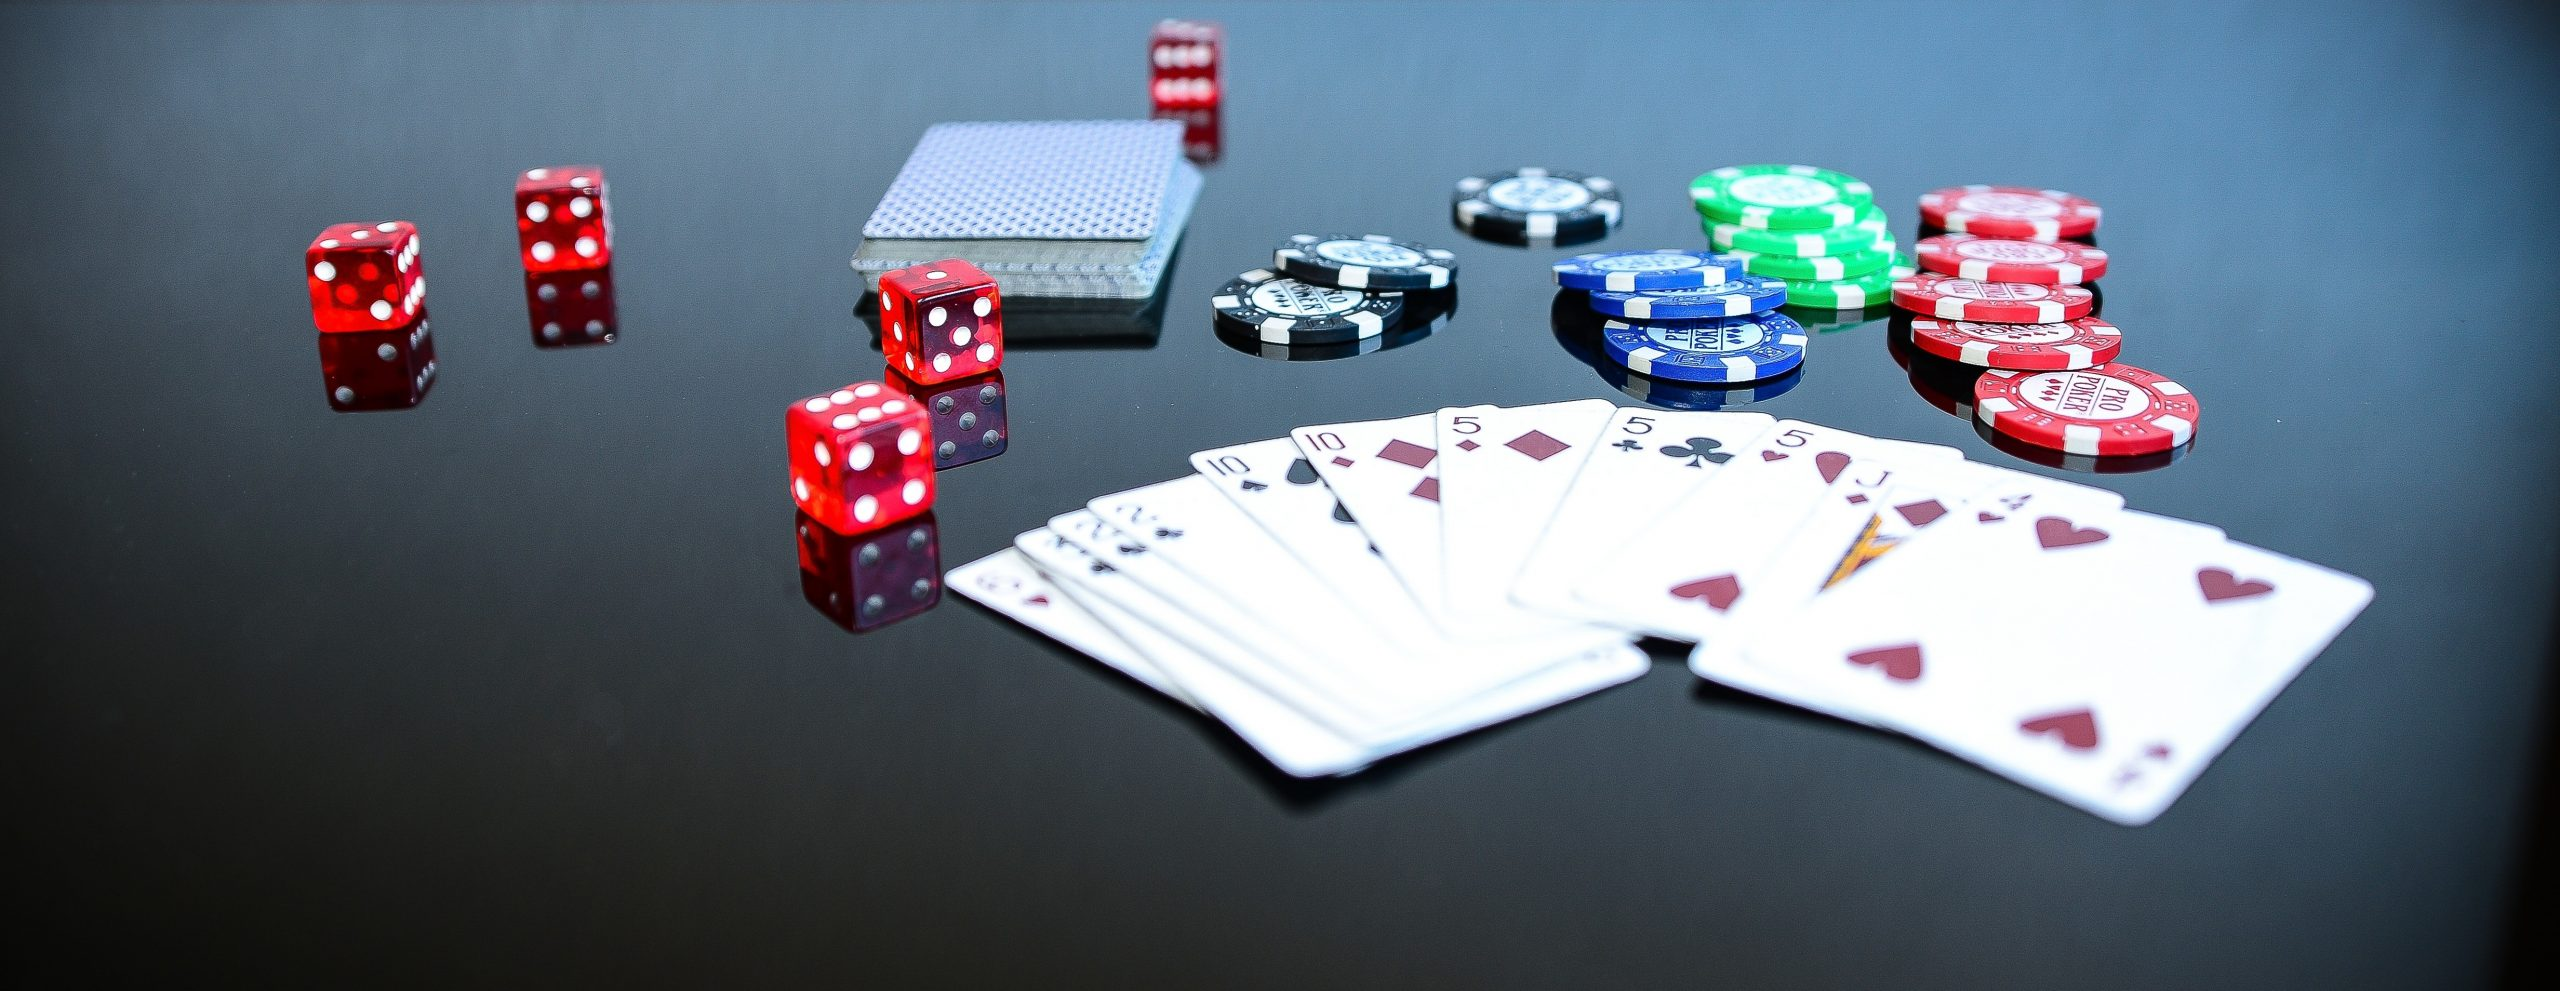 Gambling game spread among youngsters